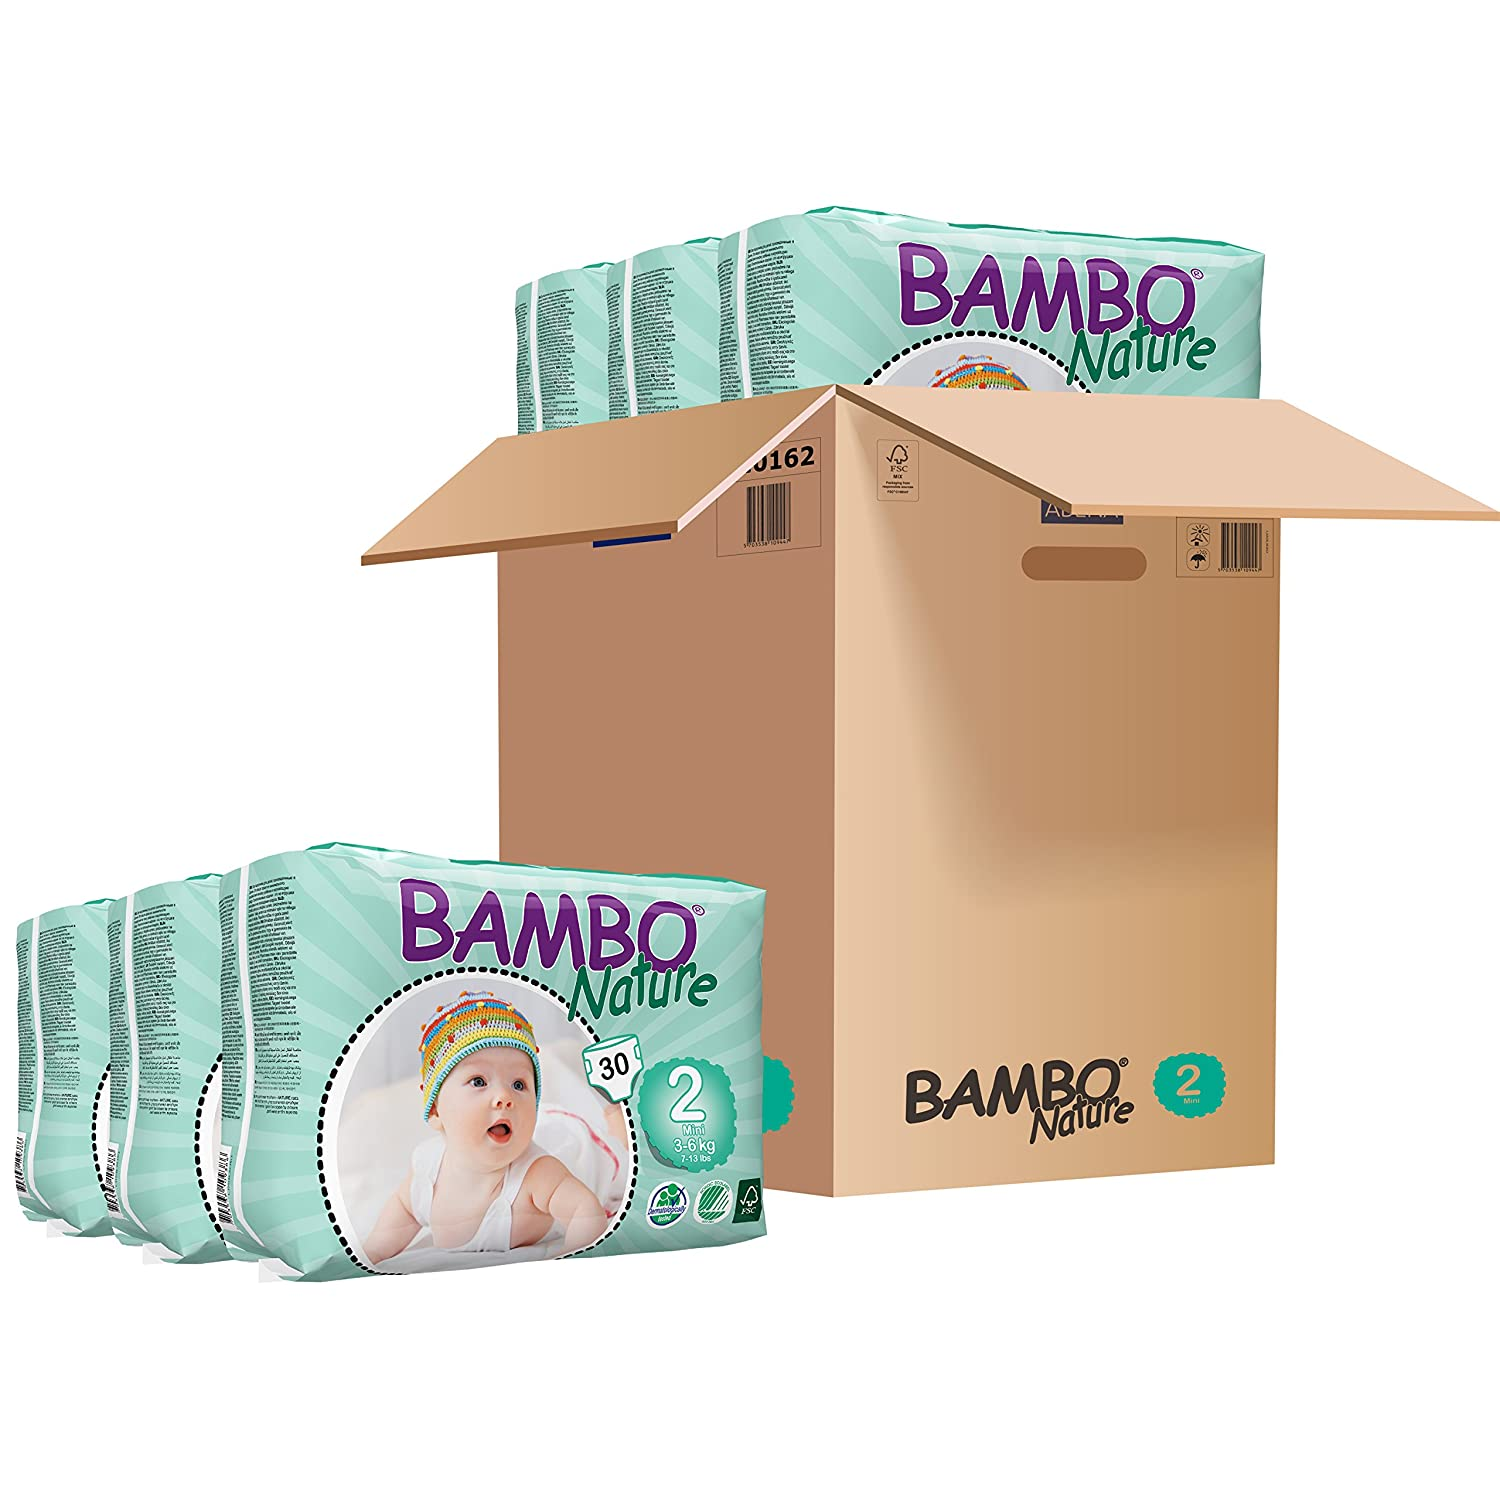 Bambo Mini Nappies (Size 2) 3-6kg, 6-13LB - 6 x packs of 30 (180 Nappies) Abena 310132-zzz-6